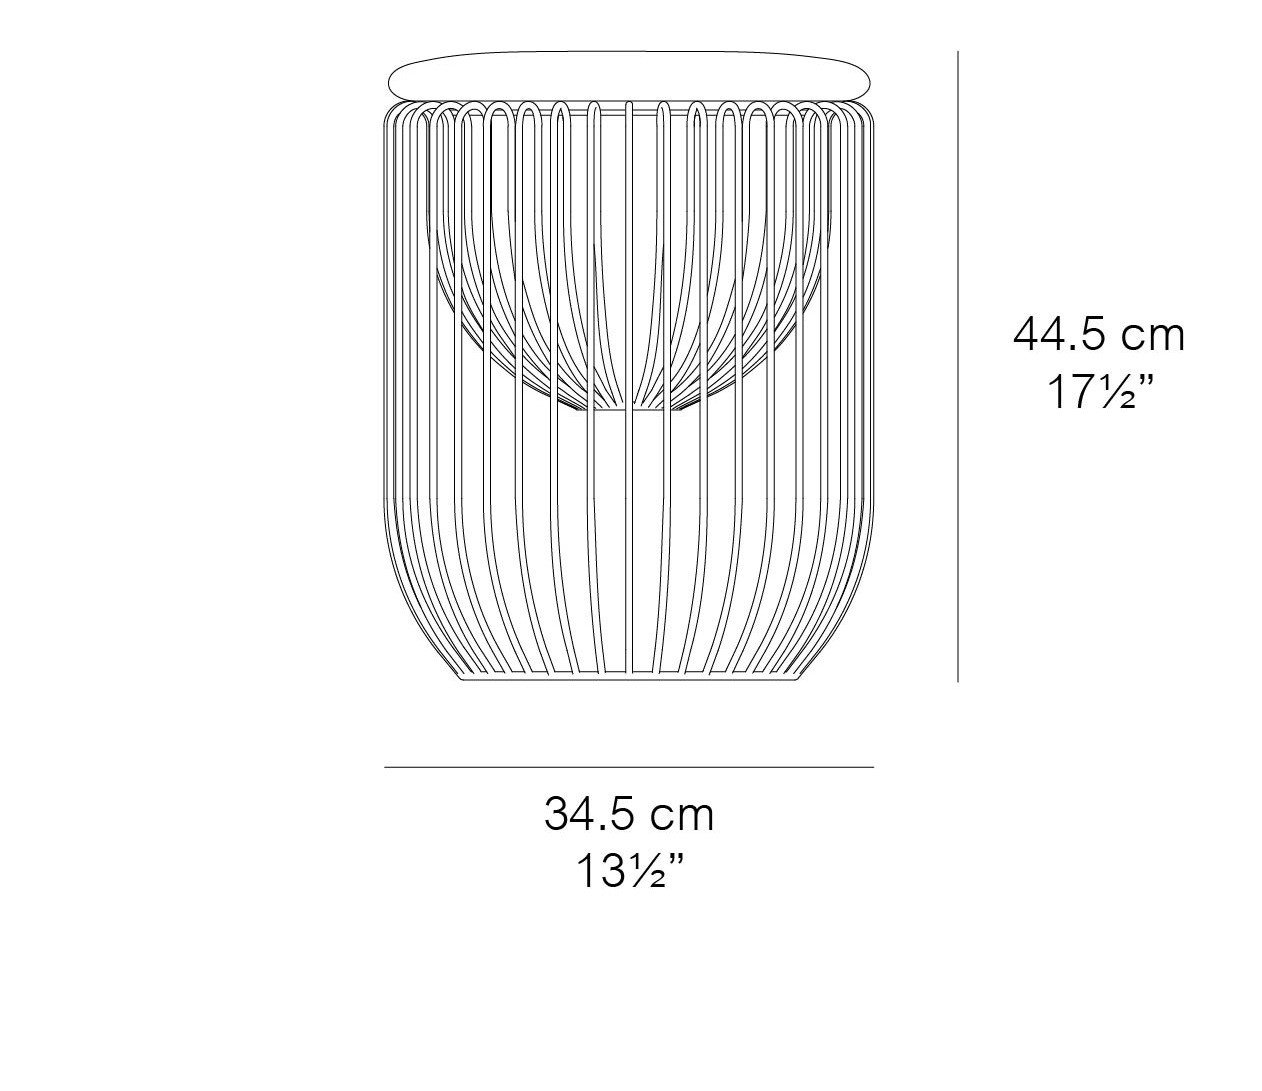 products_dimensions_Nido+-+Stool+Soft+Top.jpg